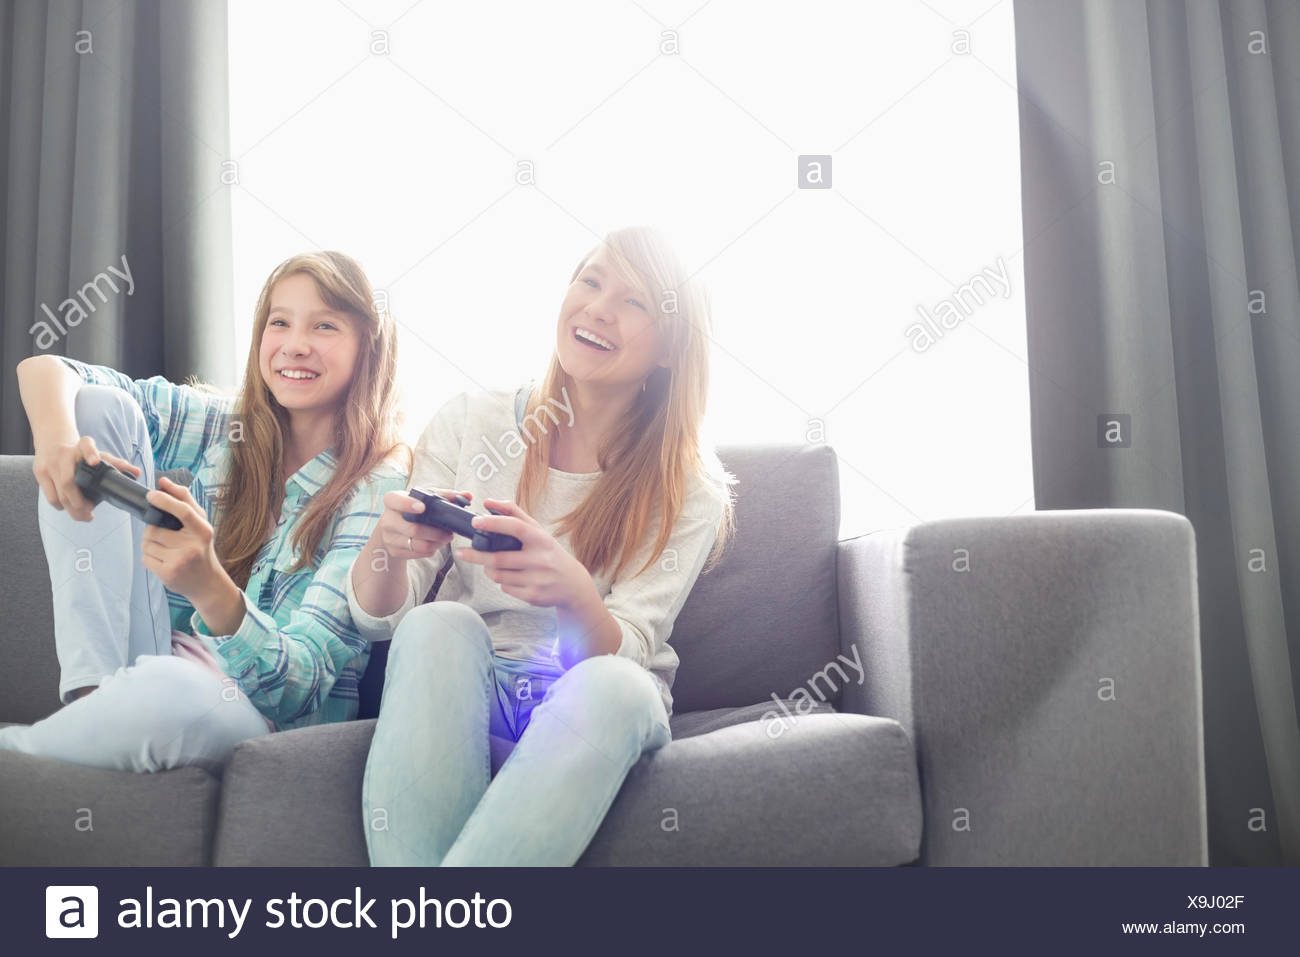 Sisters playing video games on sofa - Stock Image